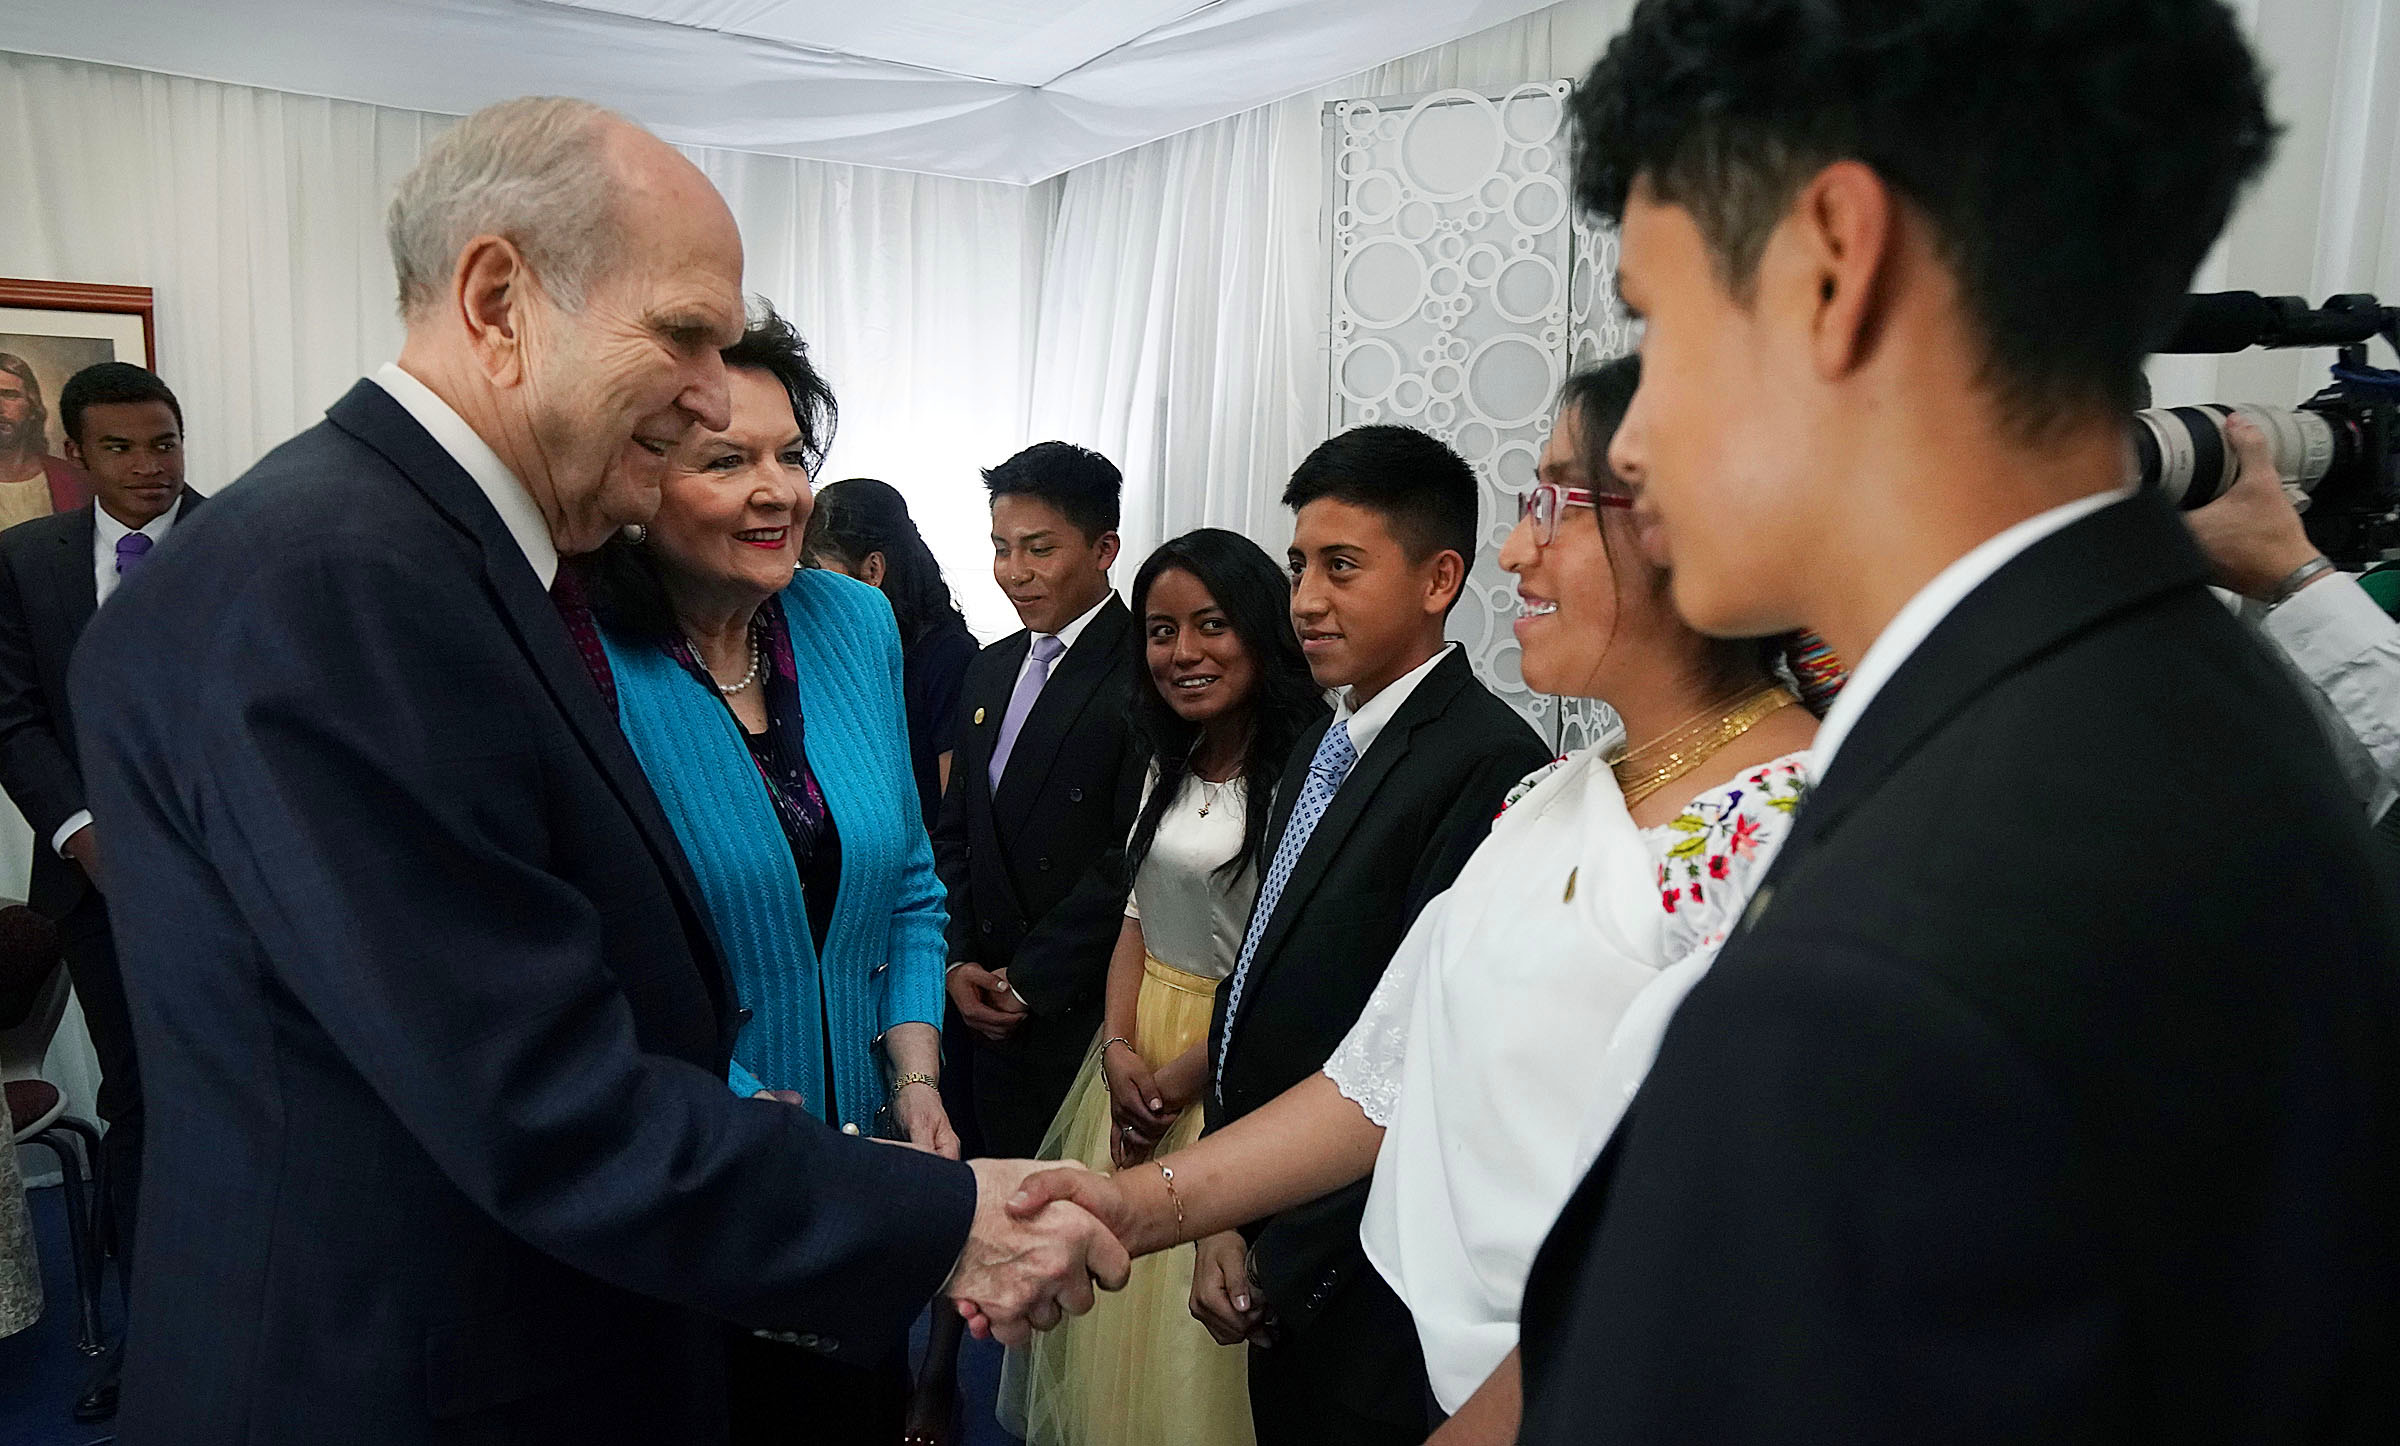 President Russell M. Nelson of The Church of Jesus Christ of Latter-day Saints and his wife, Sister Wendy Nelson, greet Rubi Tituana before a Latin America Ministry Tour devotional in Quito, Ecuador, on Monday, Aug. 26, 2019.